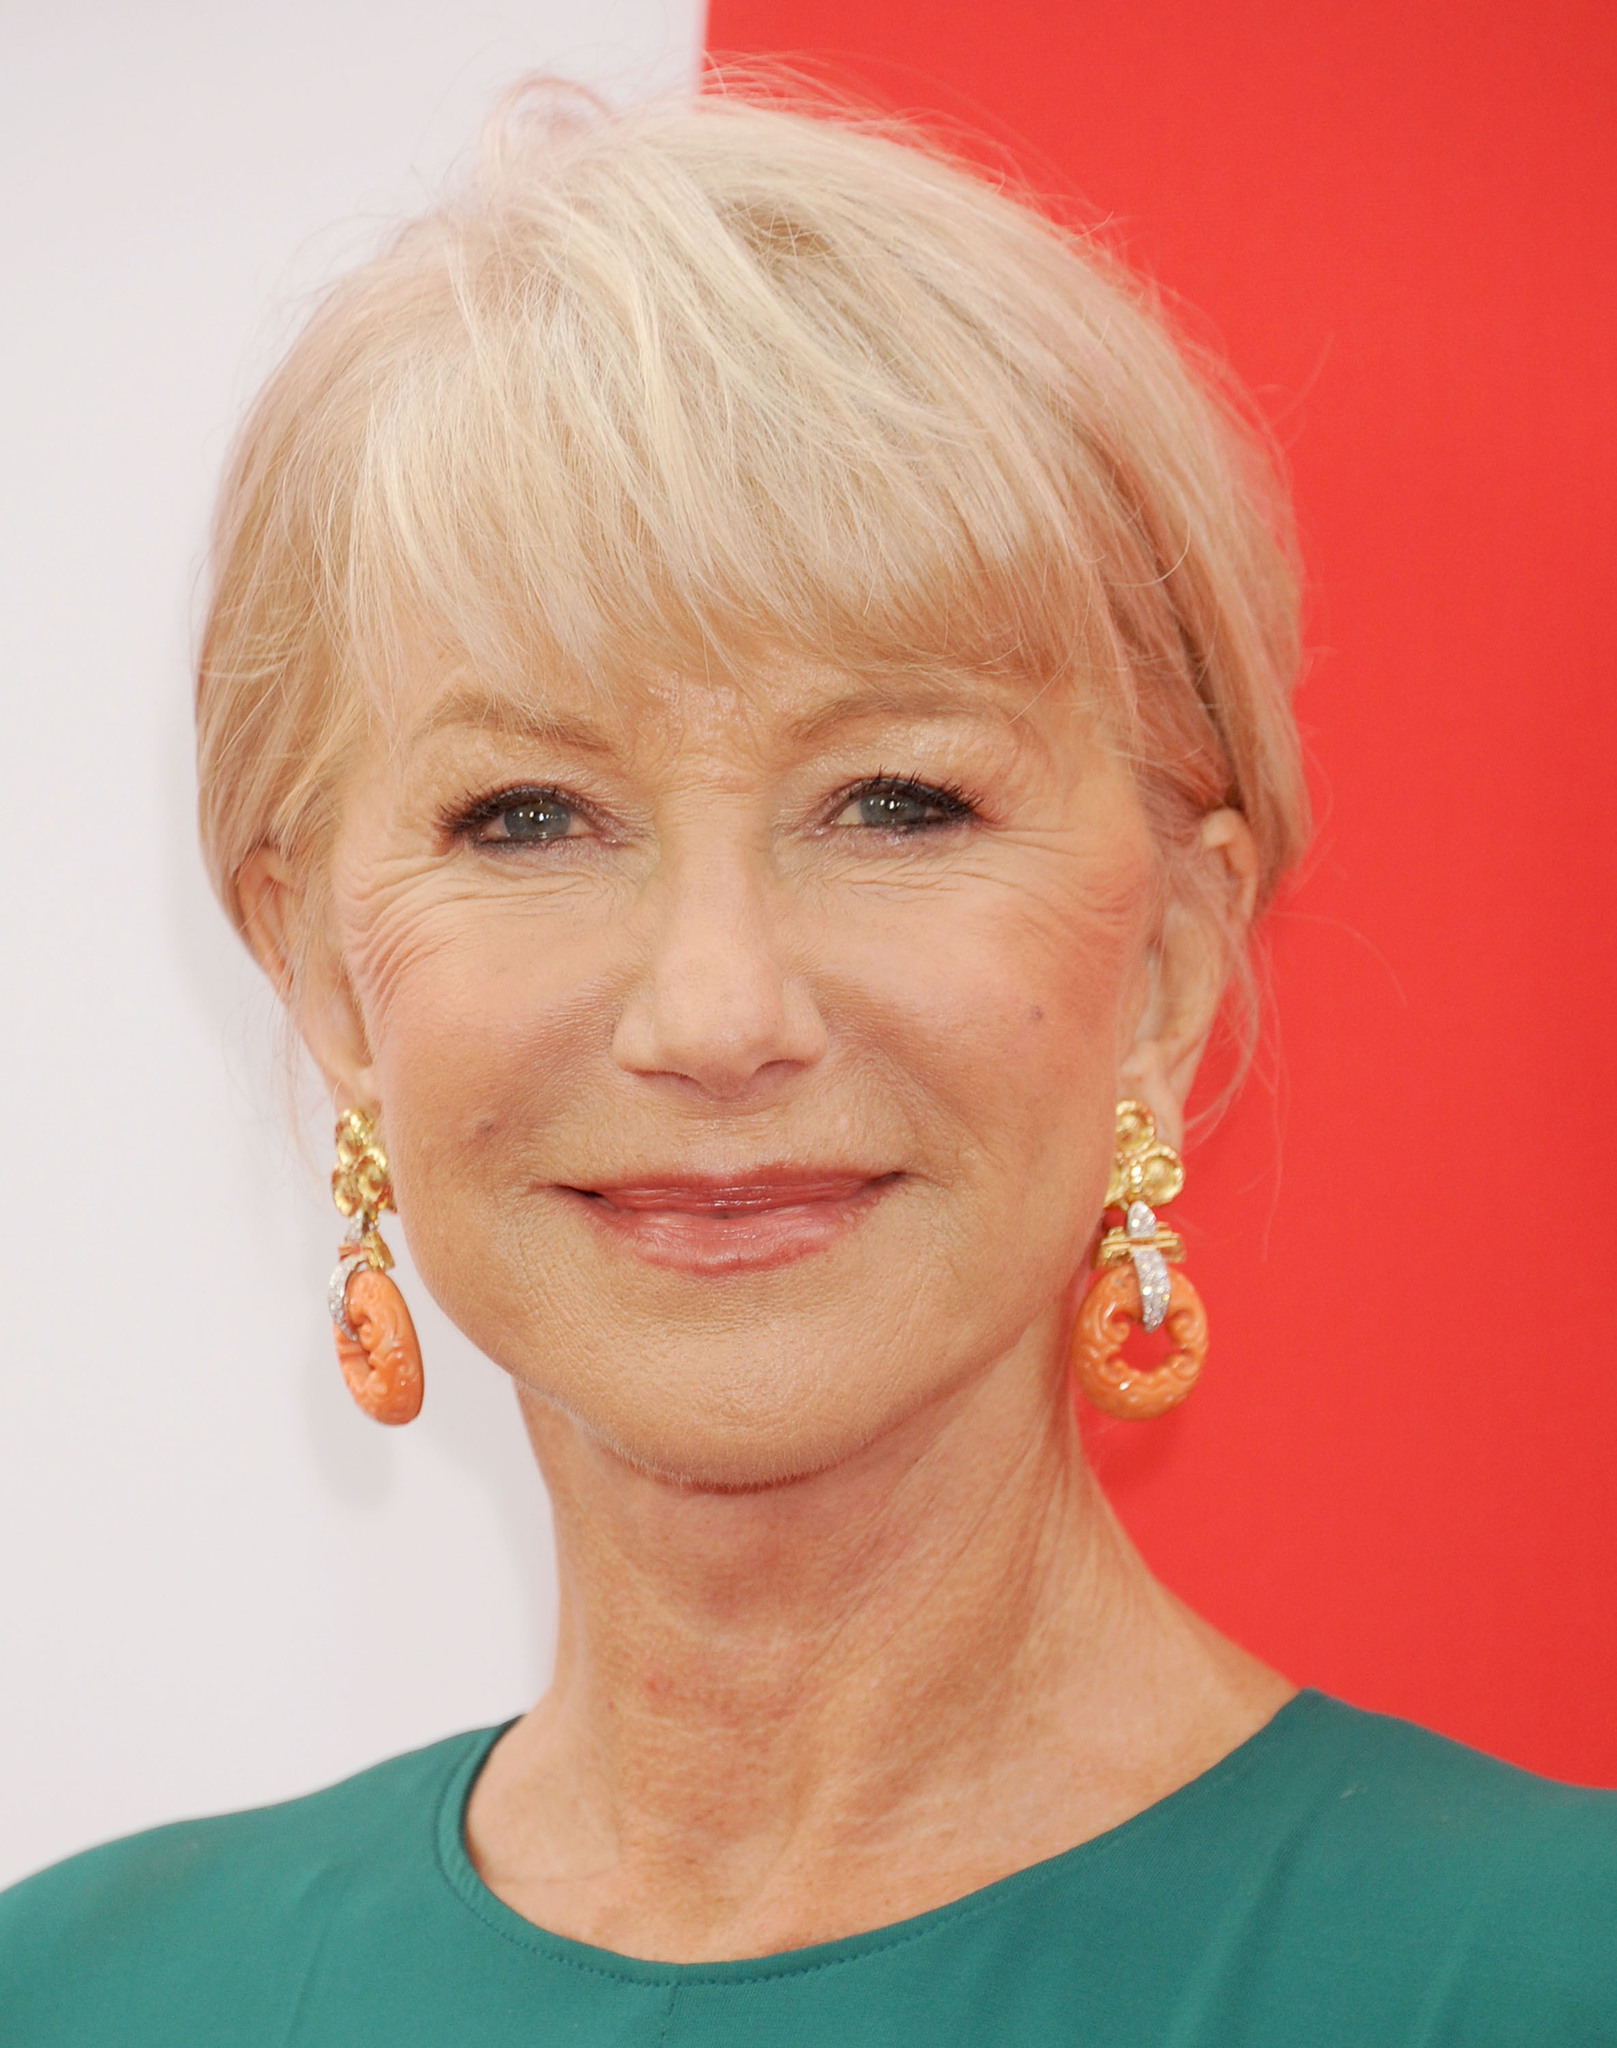 Helen mirren hot older celebrities